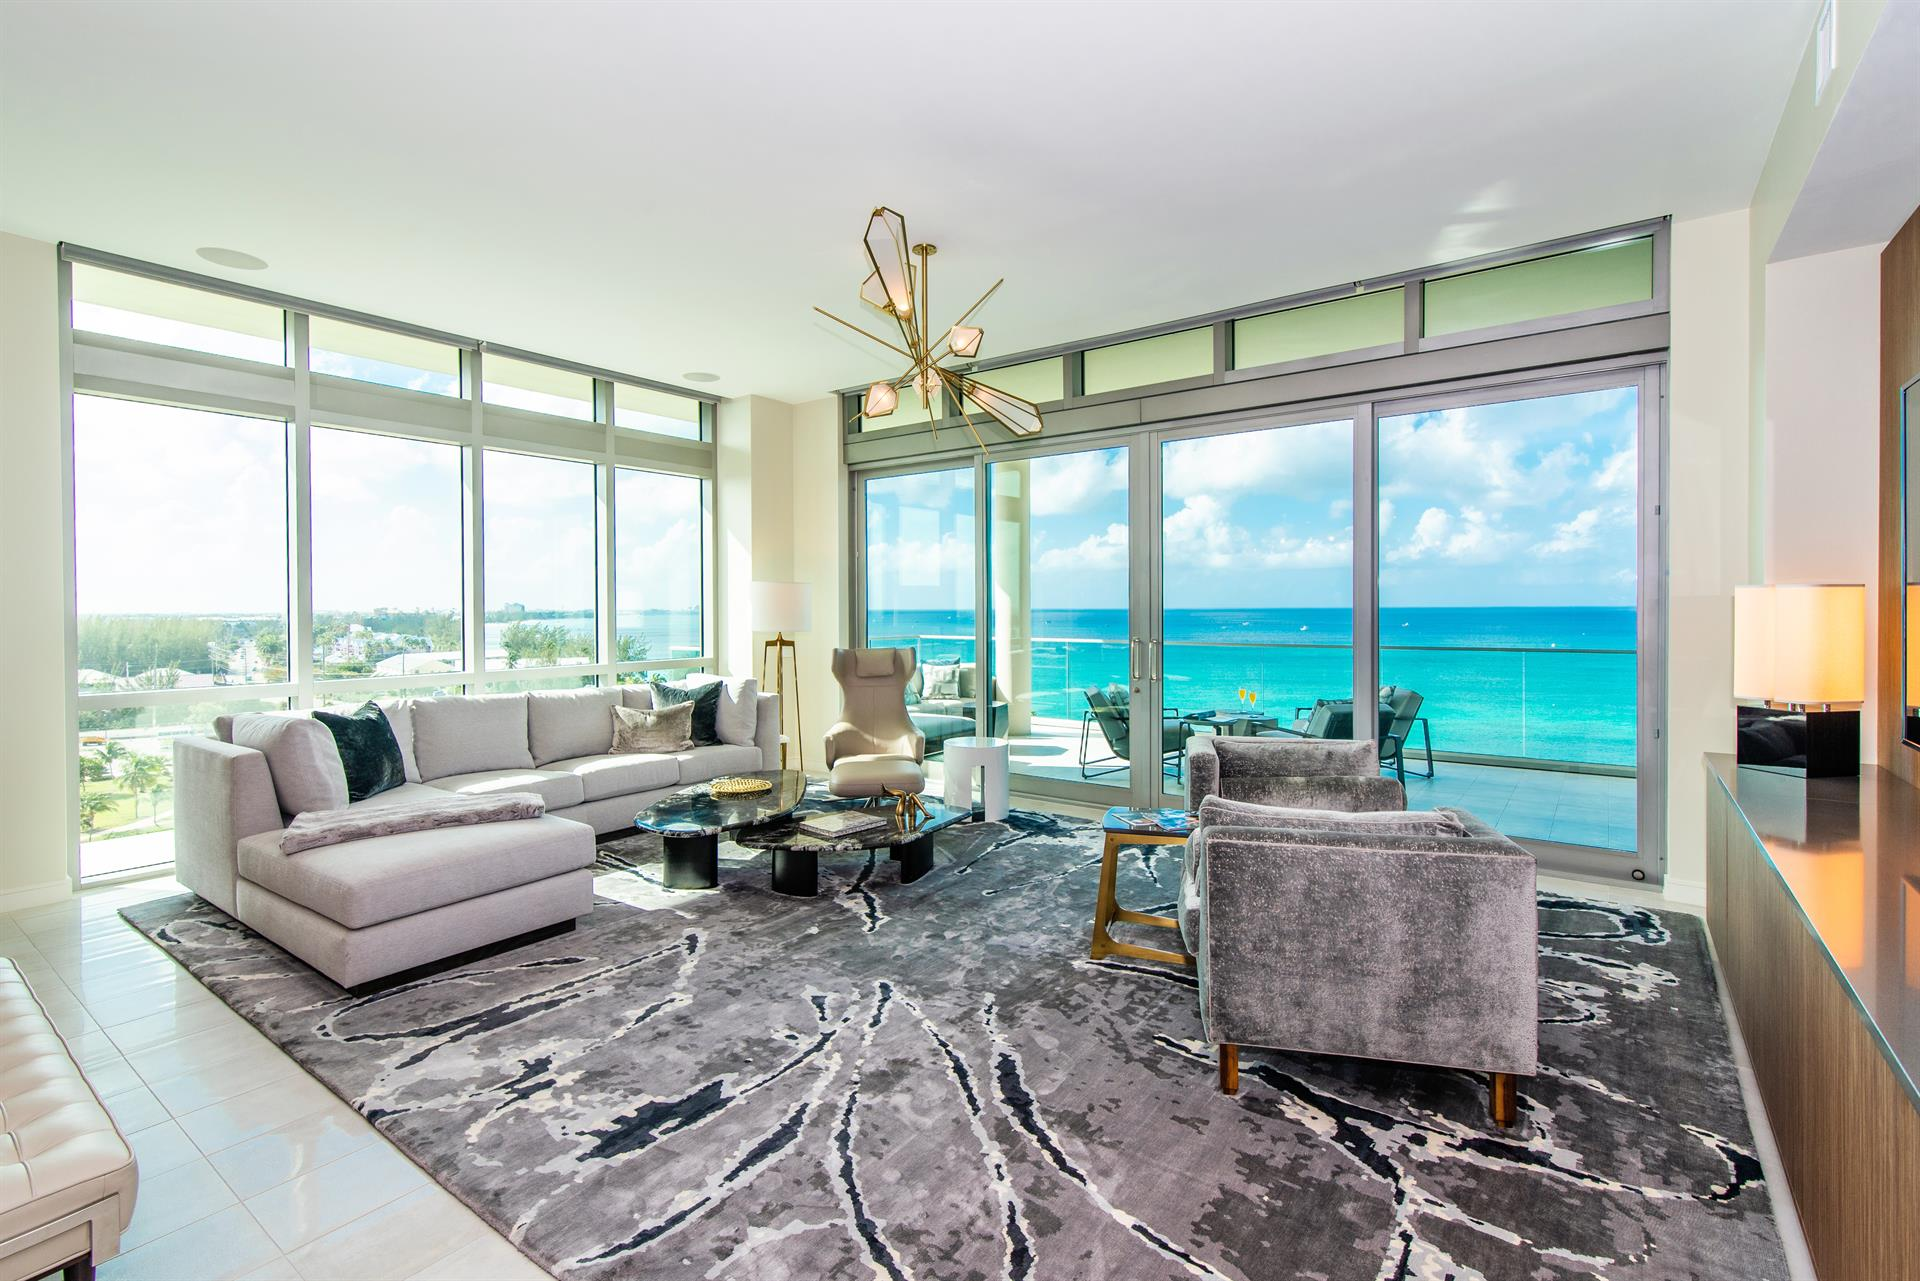 Residence S802 – The Residences at Seafire